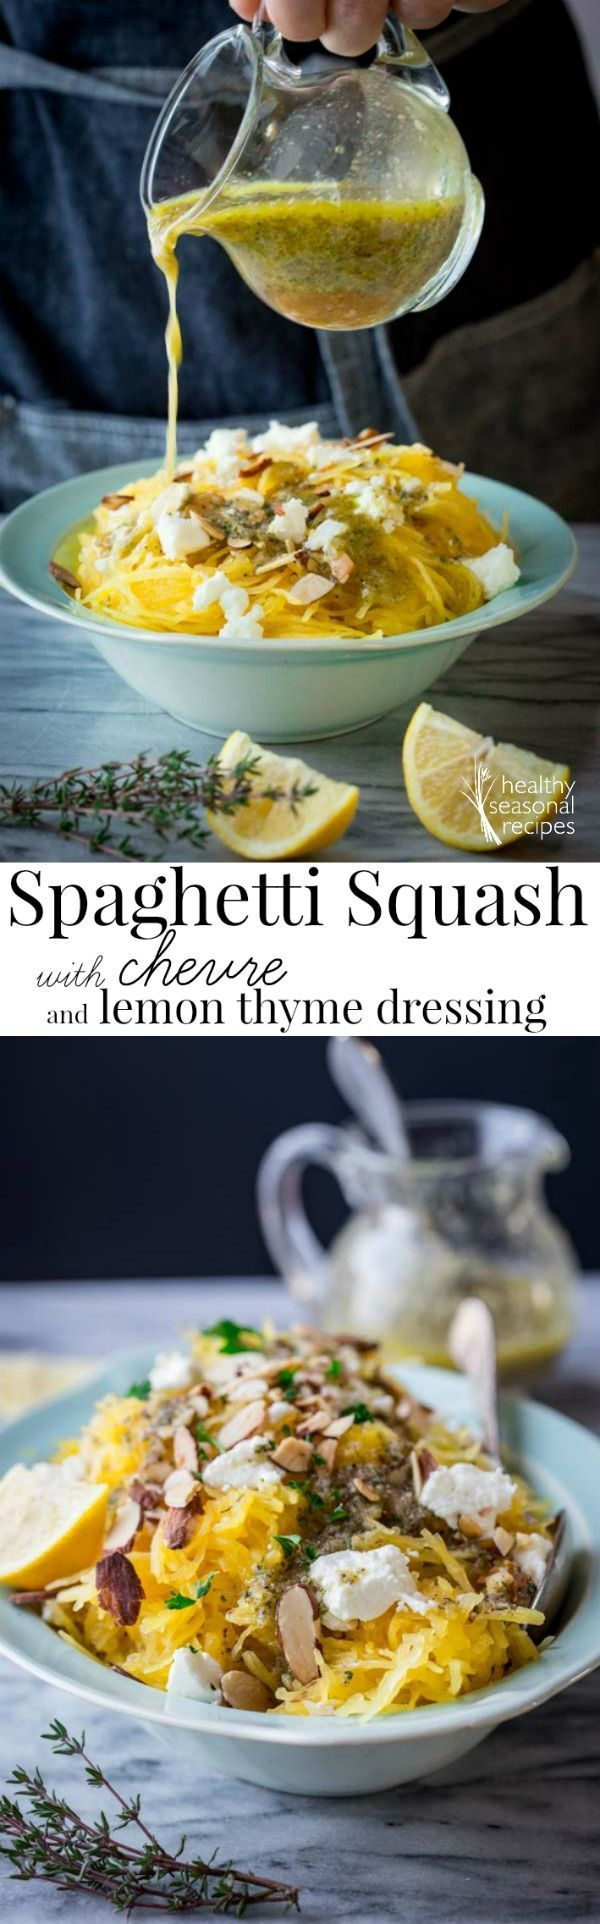 spaghetti squash with chvre and lemon thyme dressing - Healthy Seasonal Recipes